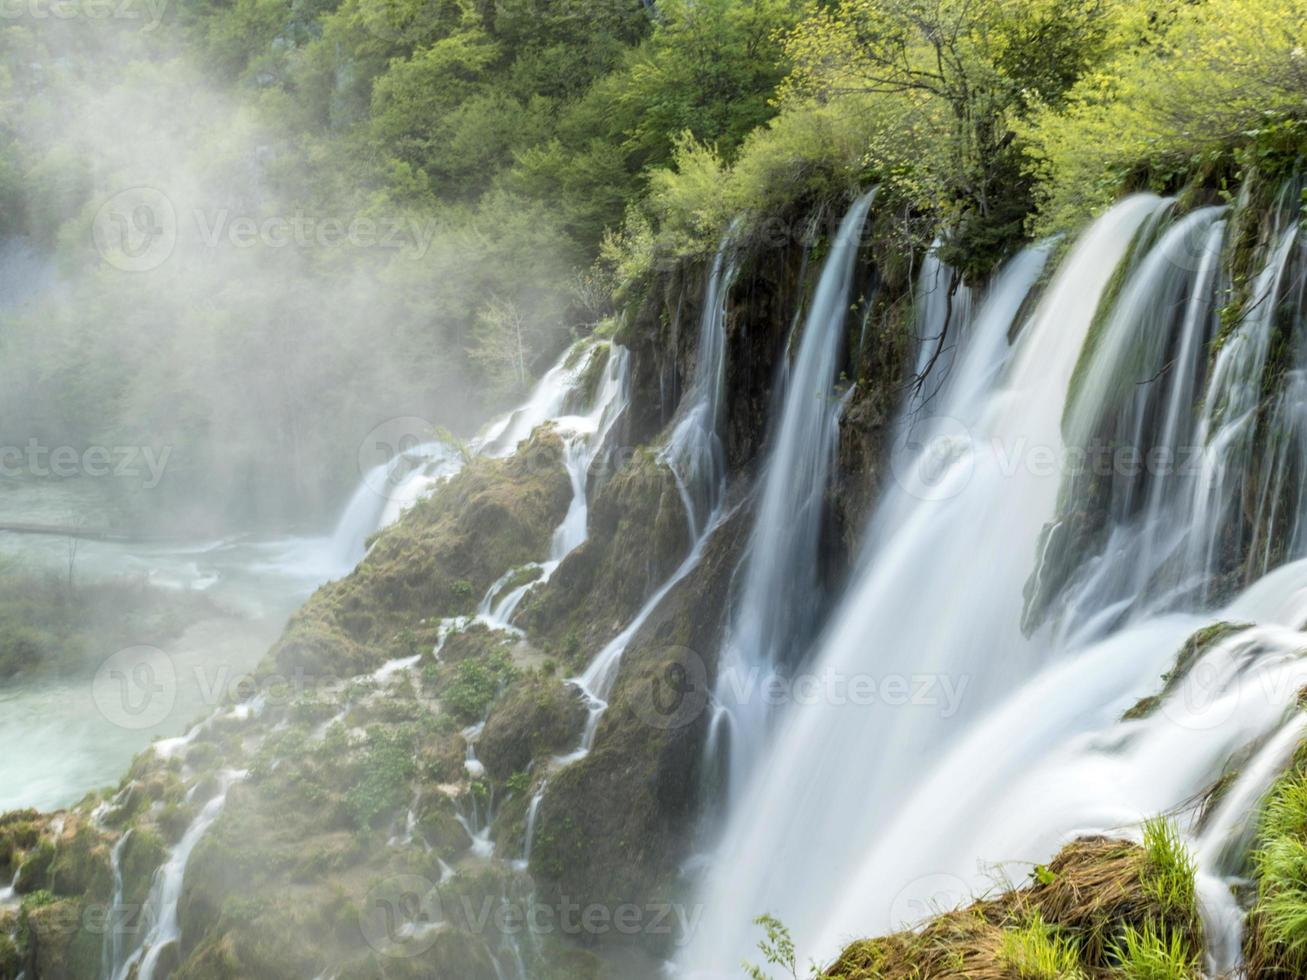 The beauty of Plitvice woods, lakes and waterfalls. photo